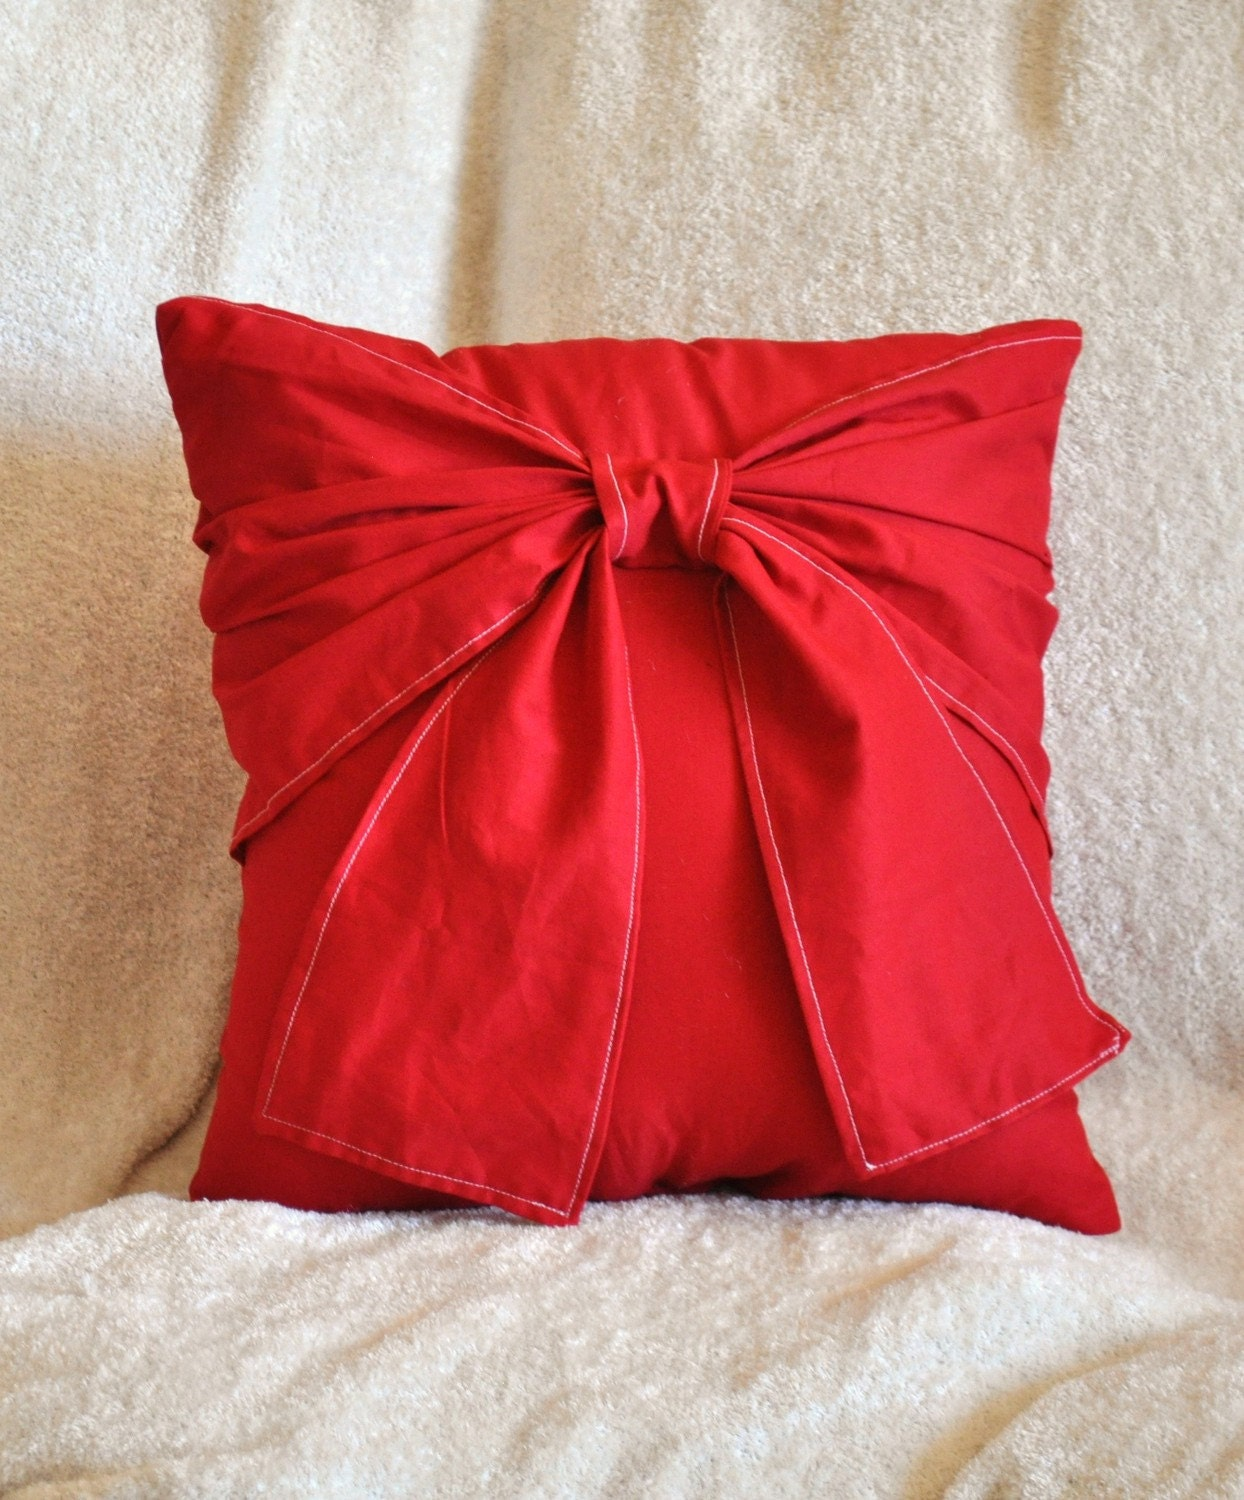 Throw Pillow With Bow : Red Decorative Pillow Big Bow Pillow 14x14 Choose Your Color